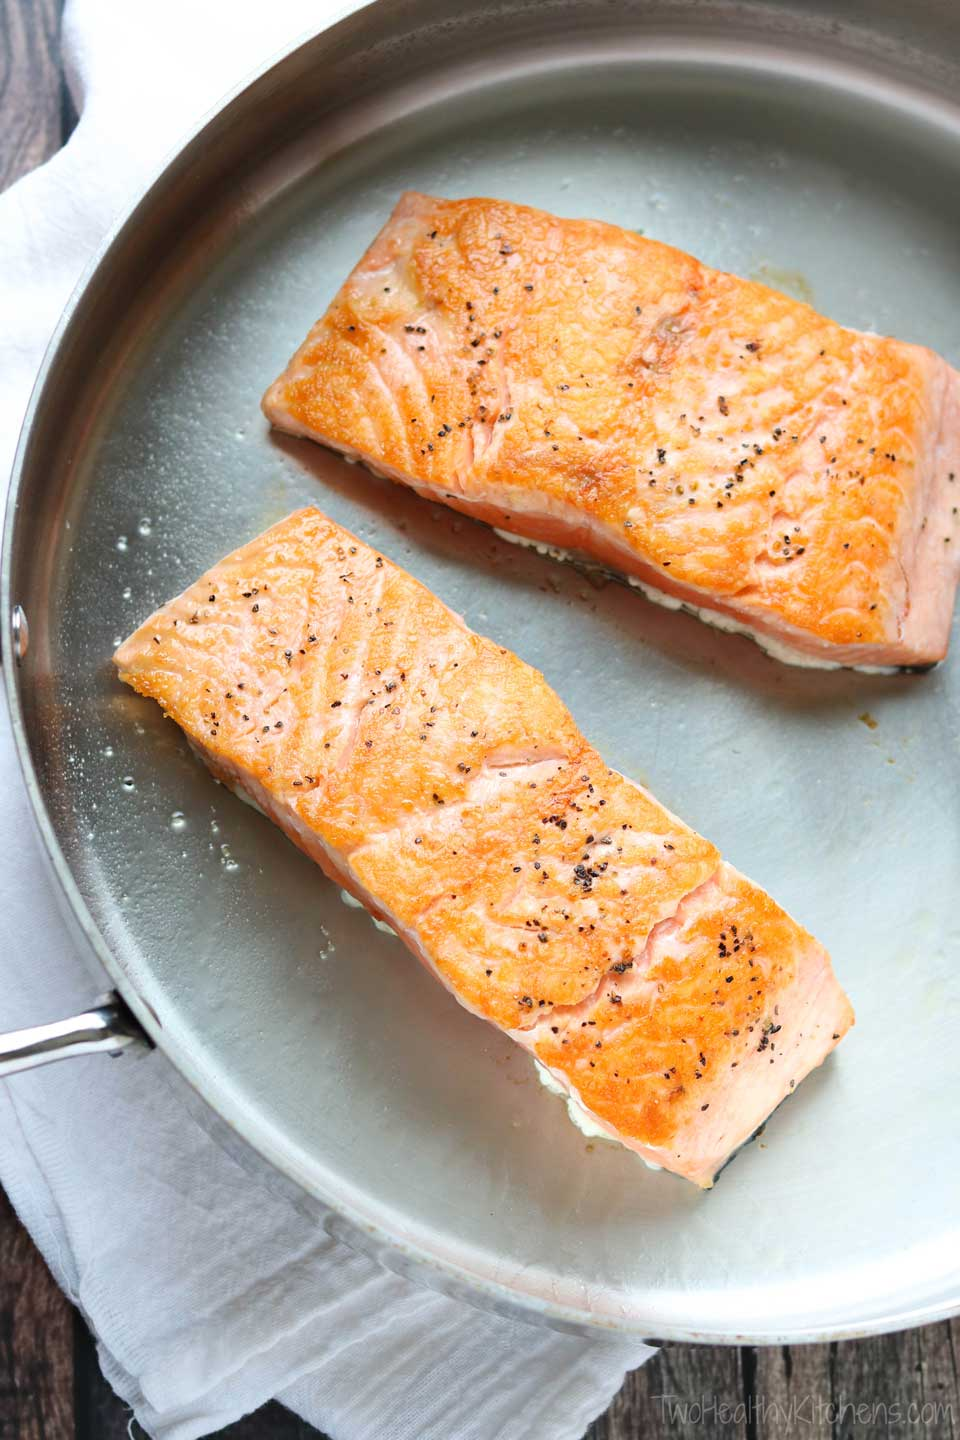 Quickly searing the salmon creates a deliciously crisp outer crust.